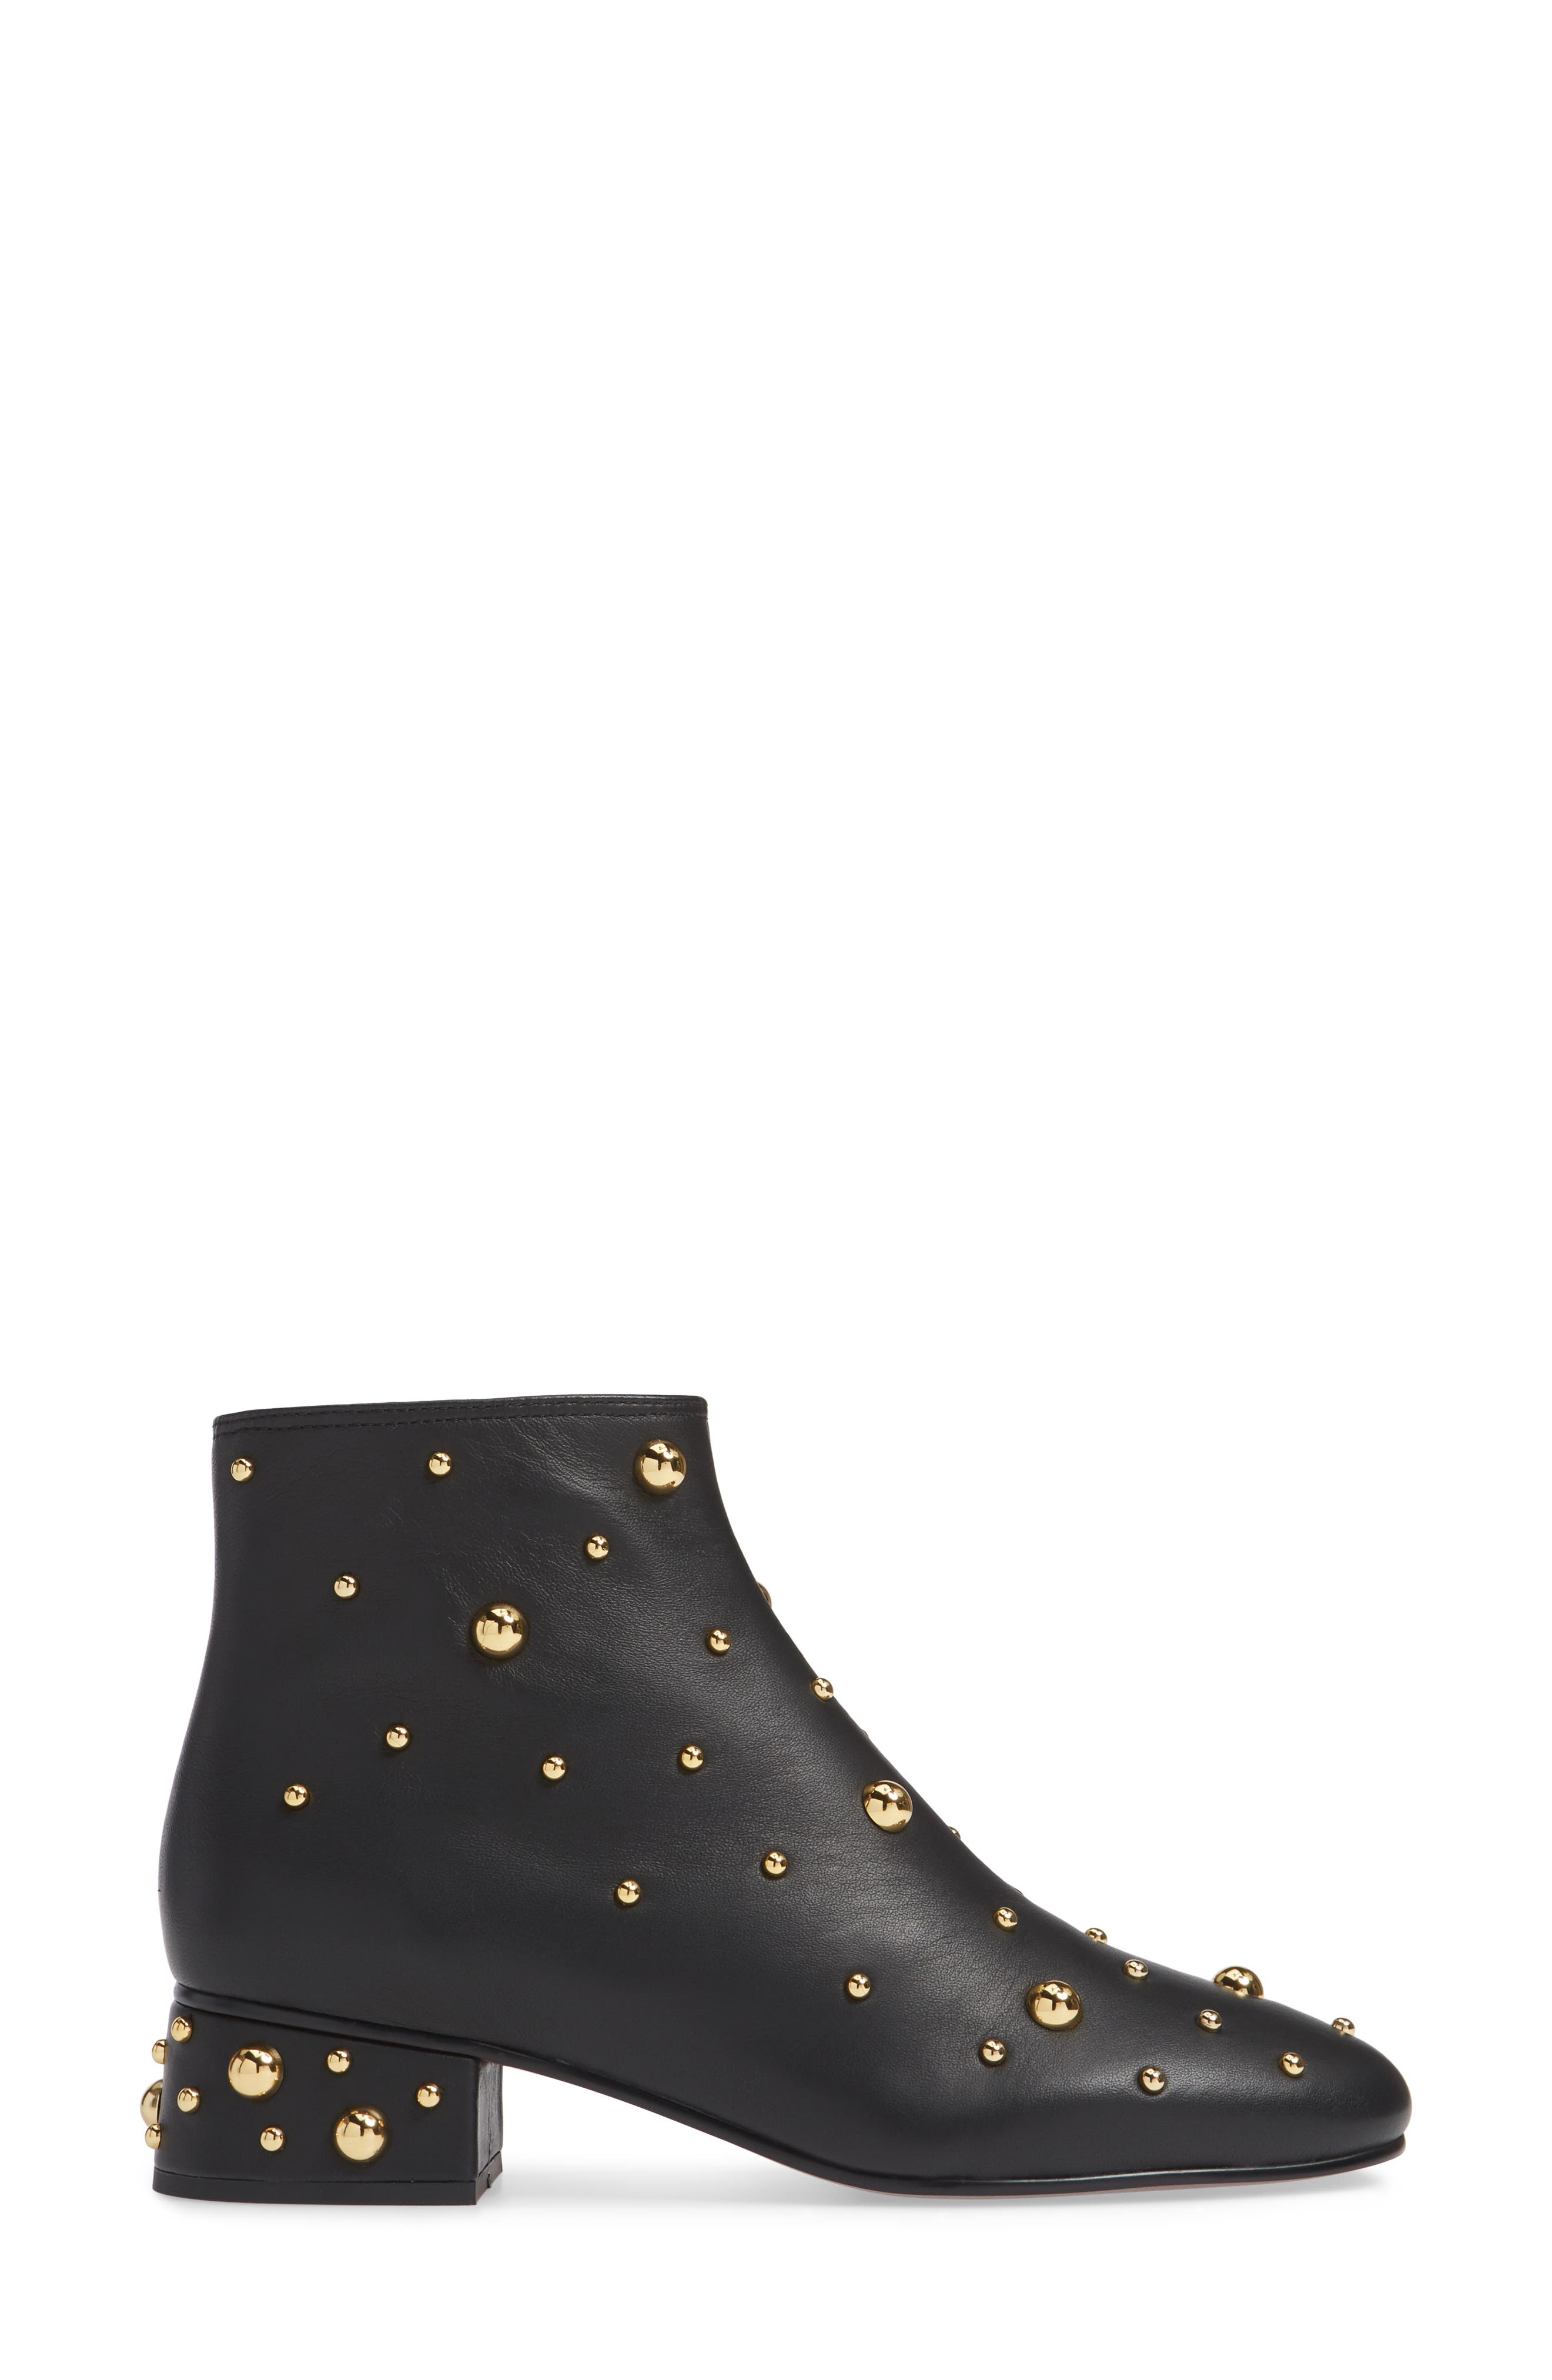 SEE BY CHLOÉ,                             Abby Studded Bootie,                             Alternate thumbnail 3, color,                             001